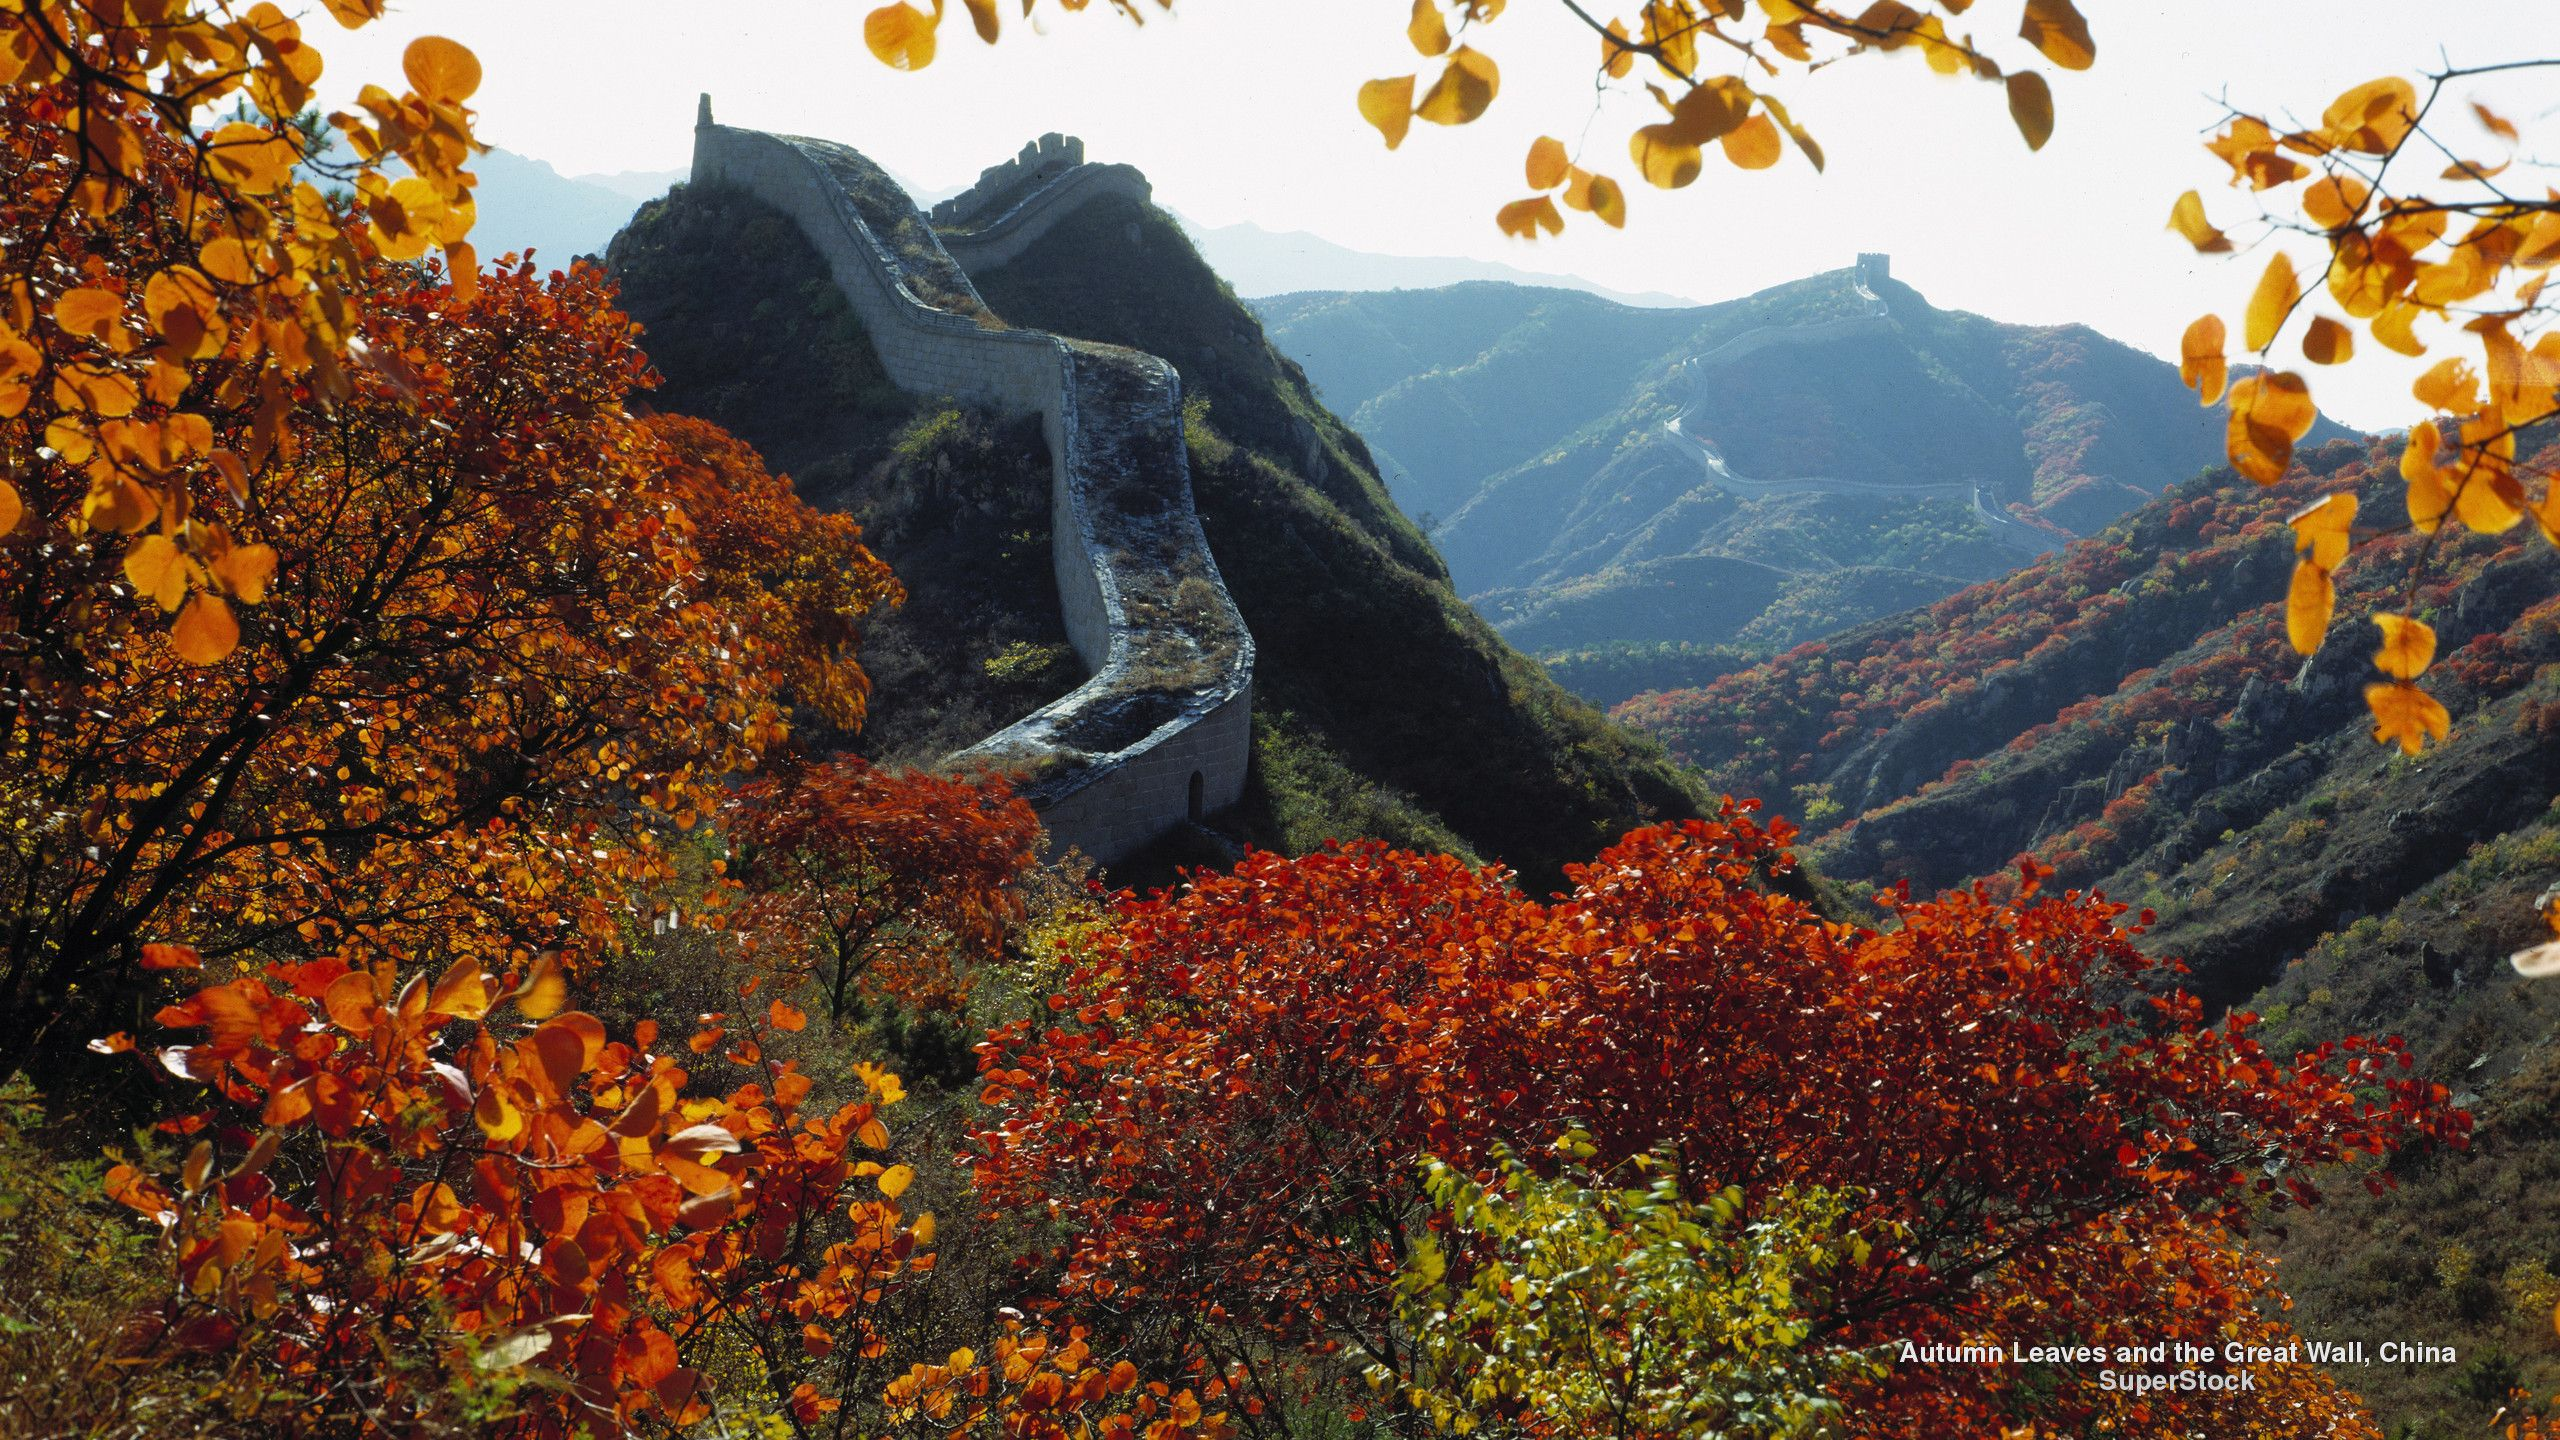 Free Fall Wallpaper Autumn Leaves and the Great Wall